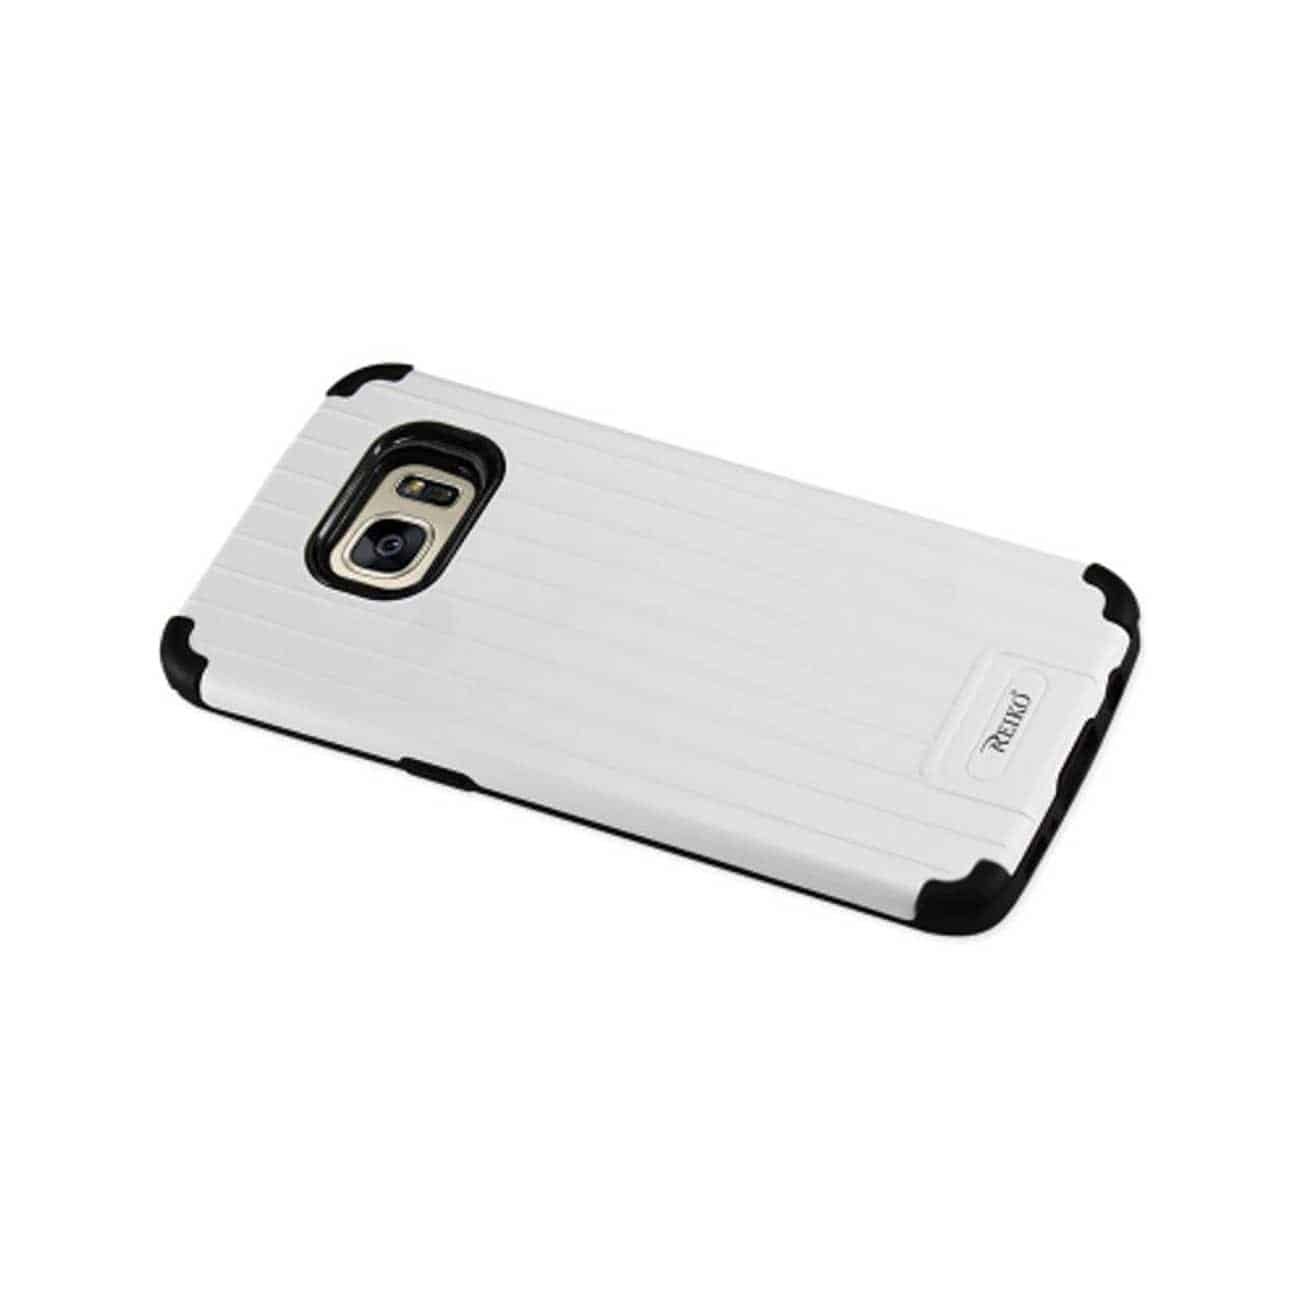 SAMSUNG GALAXY S7 EDGE RUGGED METAL TEXTURE HYBRID CASE WITH RIDGED BACK IN BLACK WHITE